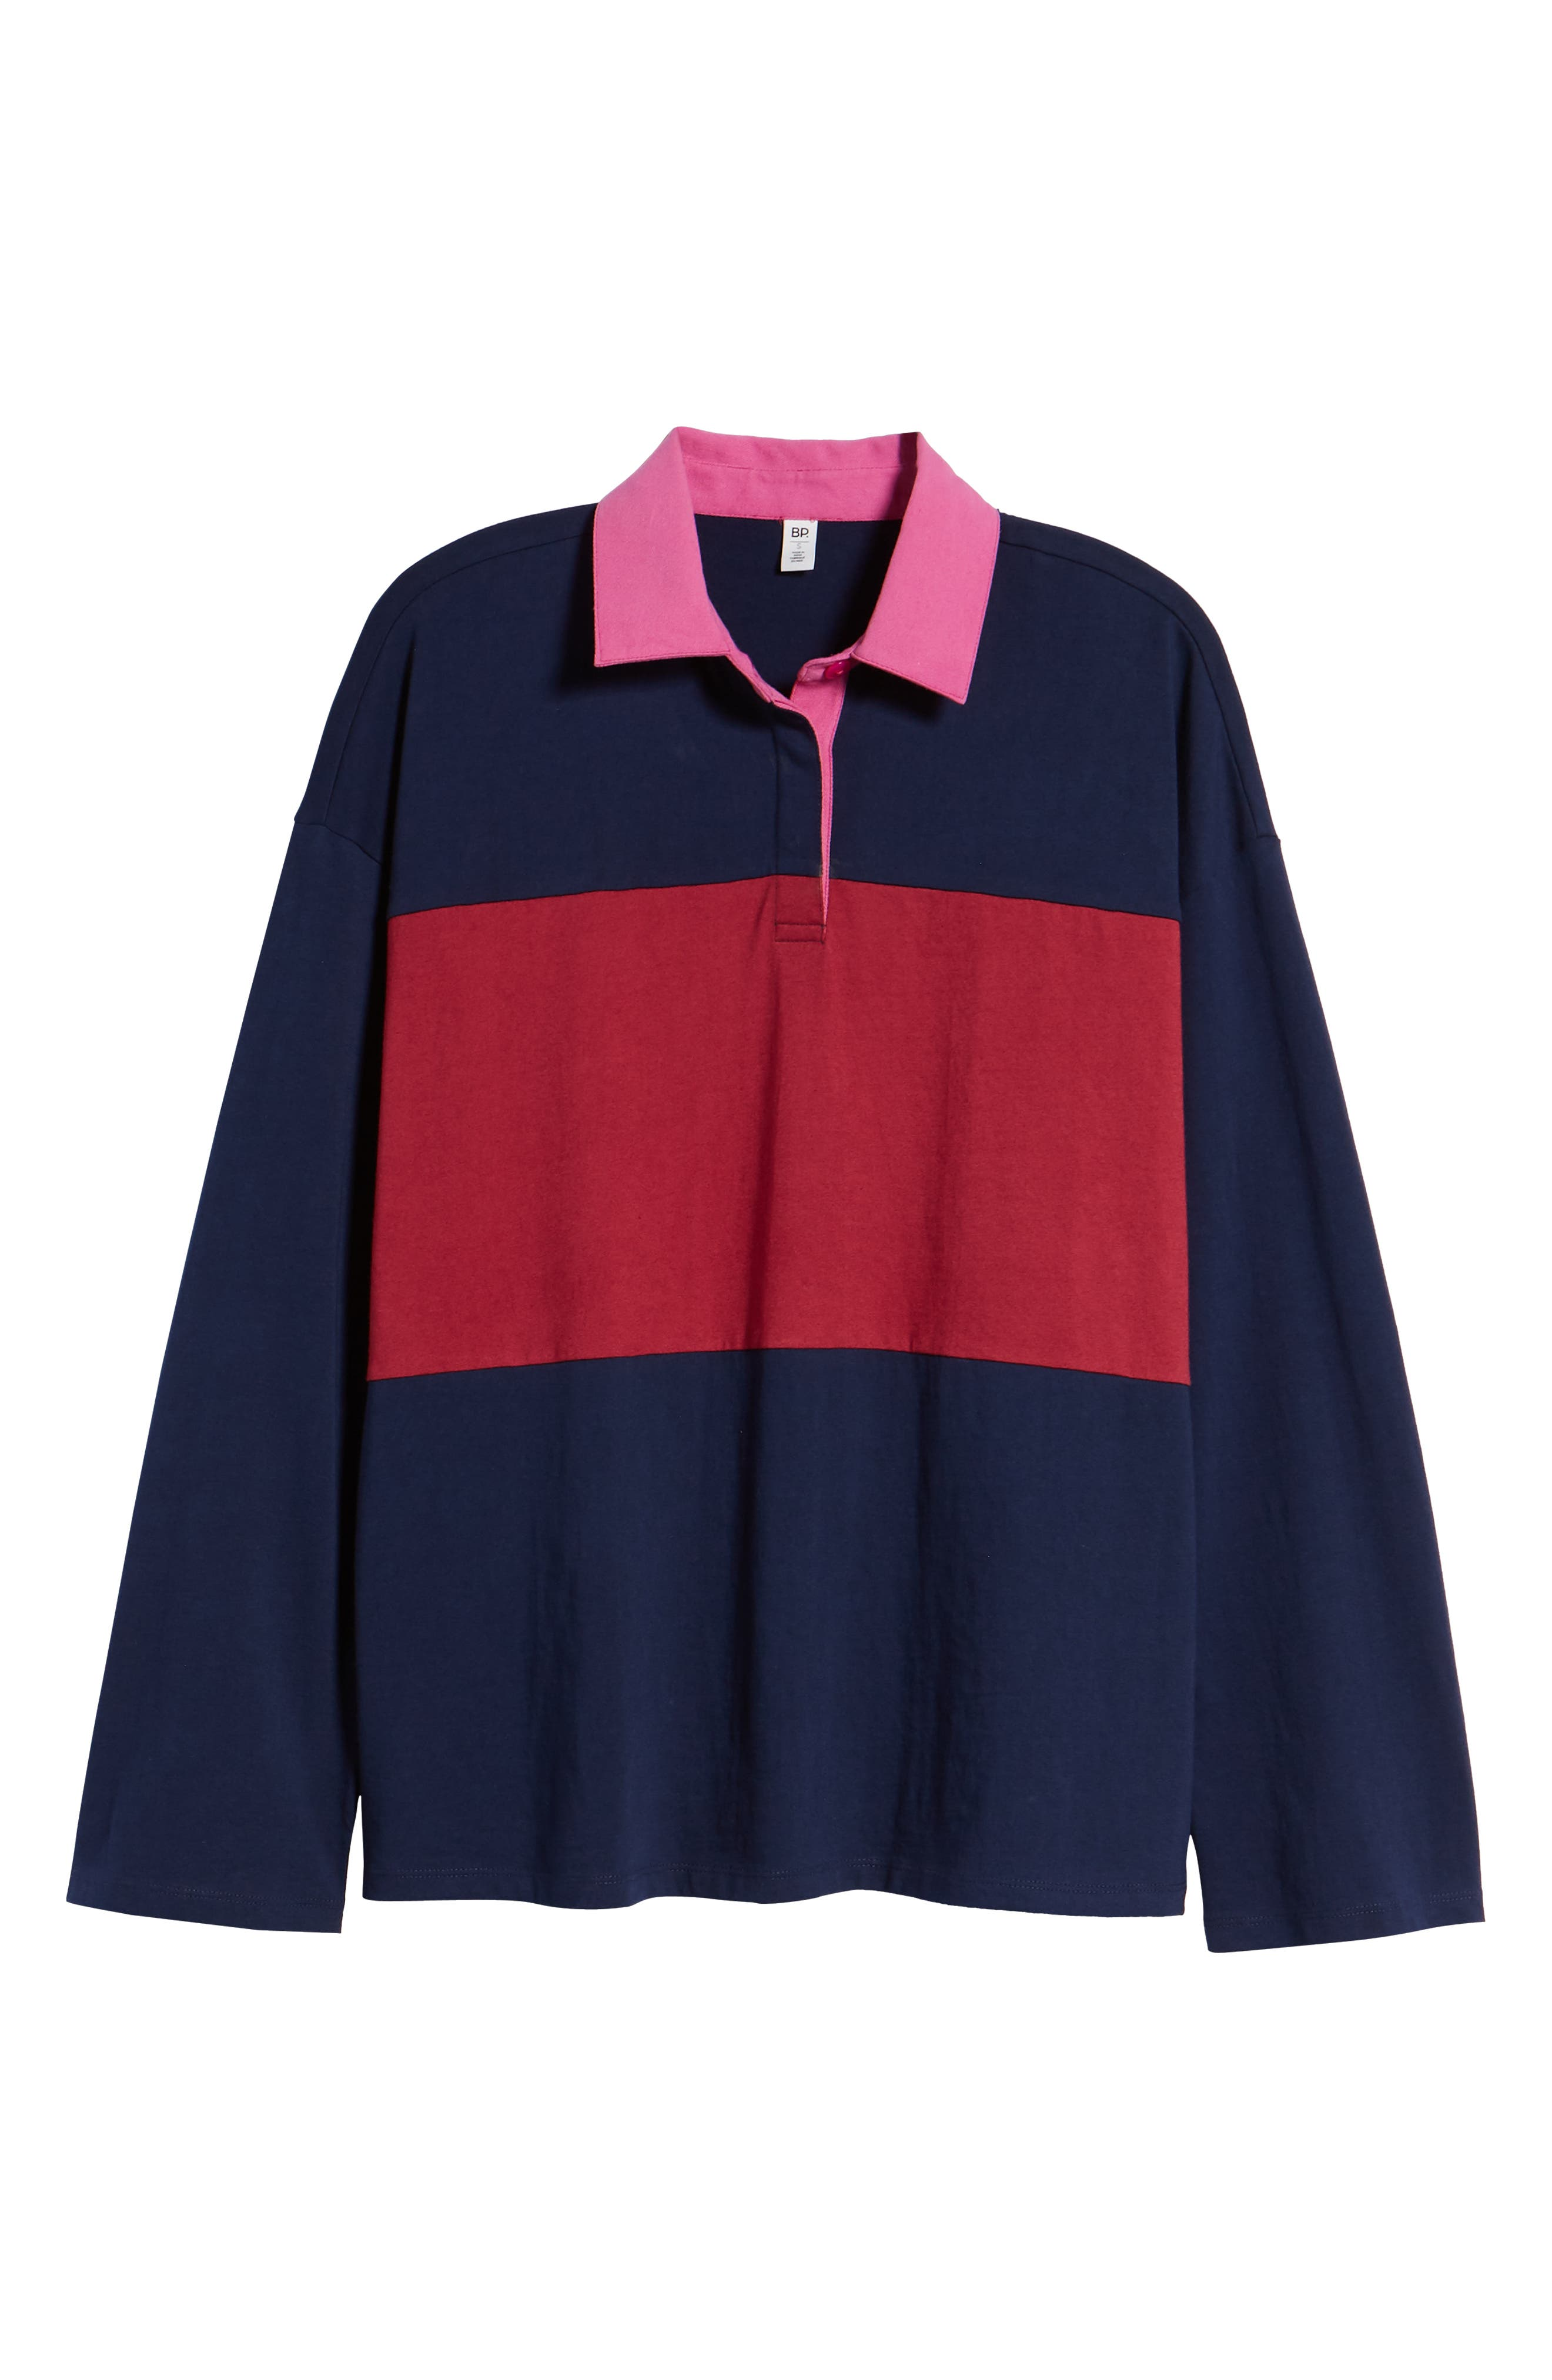 Rugby Polo,                             Alternate thumbnail 6, color,                             NAVY MARITIME